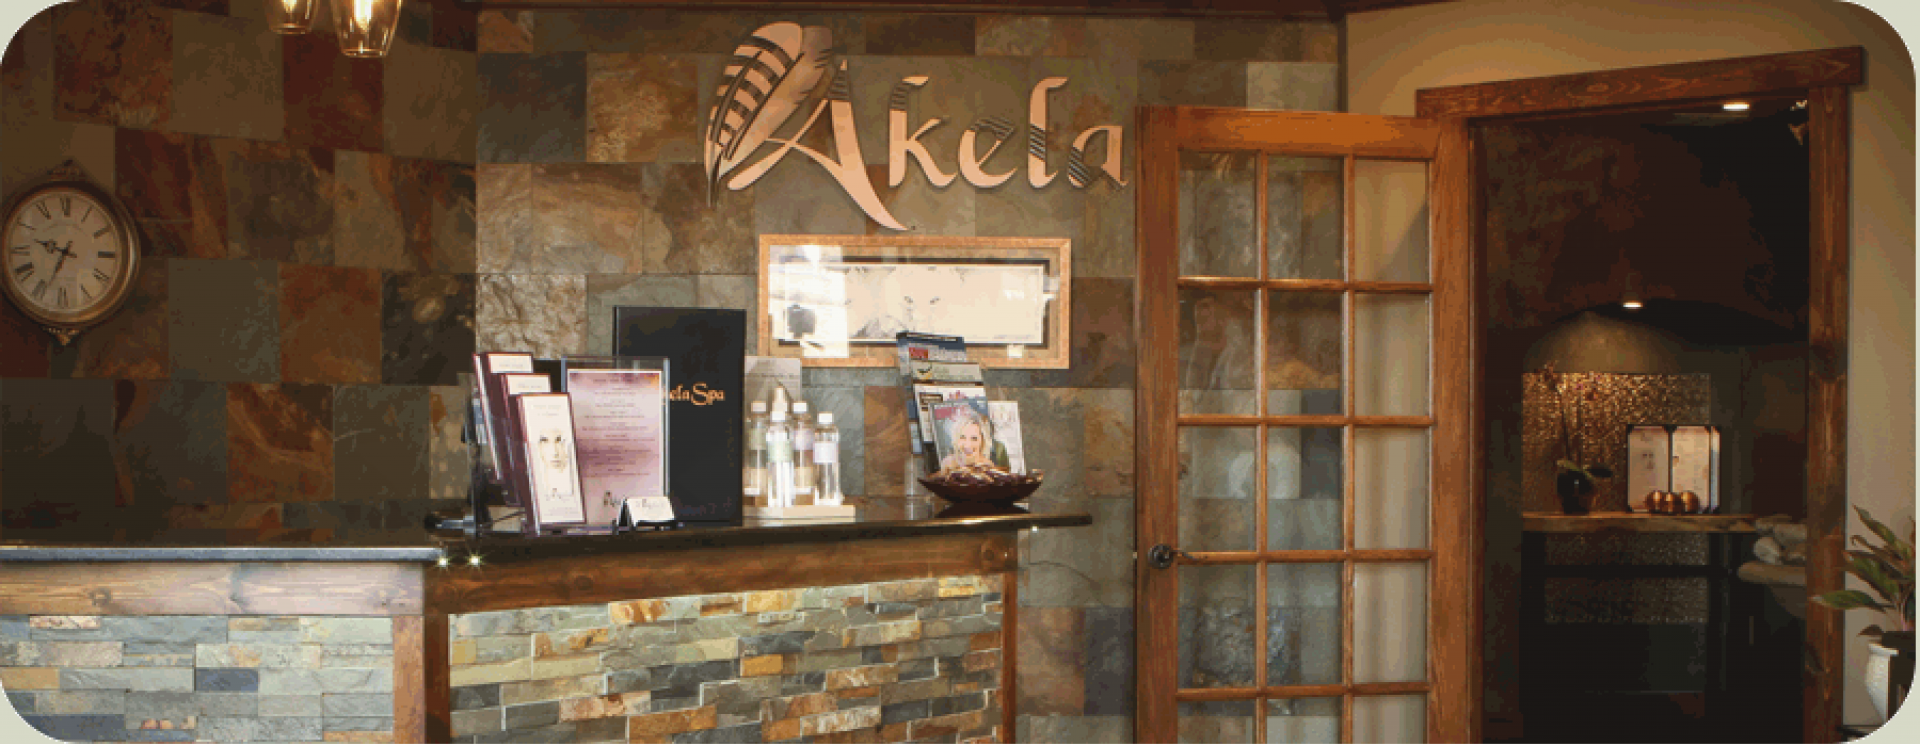 Akela Spa of Deadwood